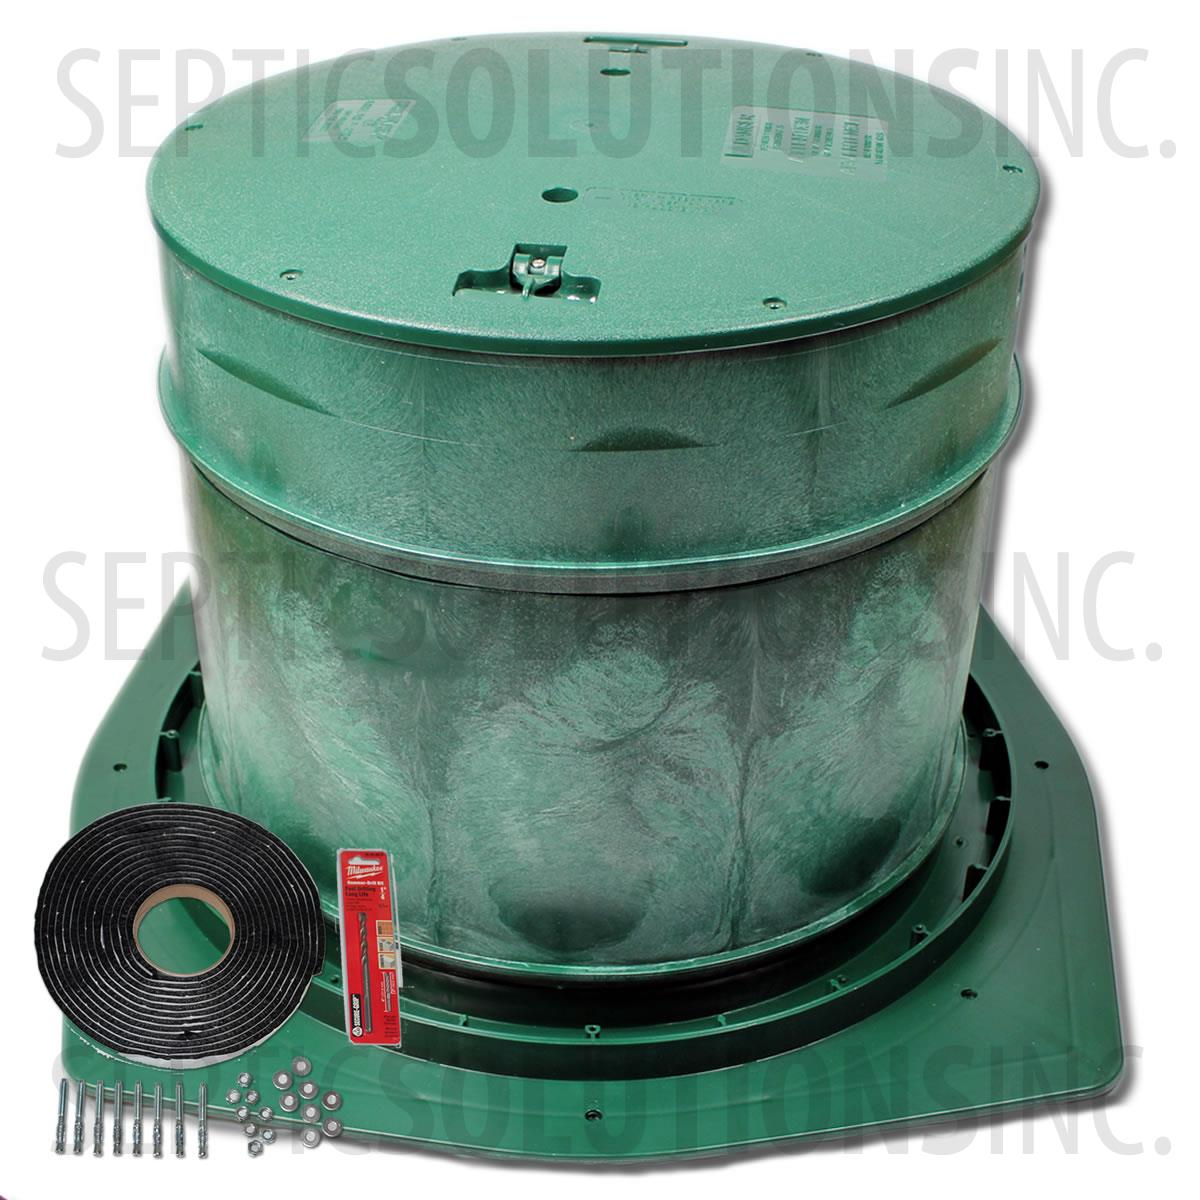 Septic Tank Riser Package 20 Diameter X 18 Tall